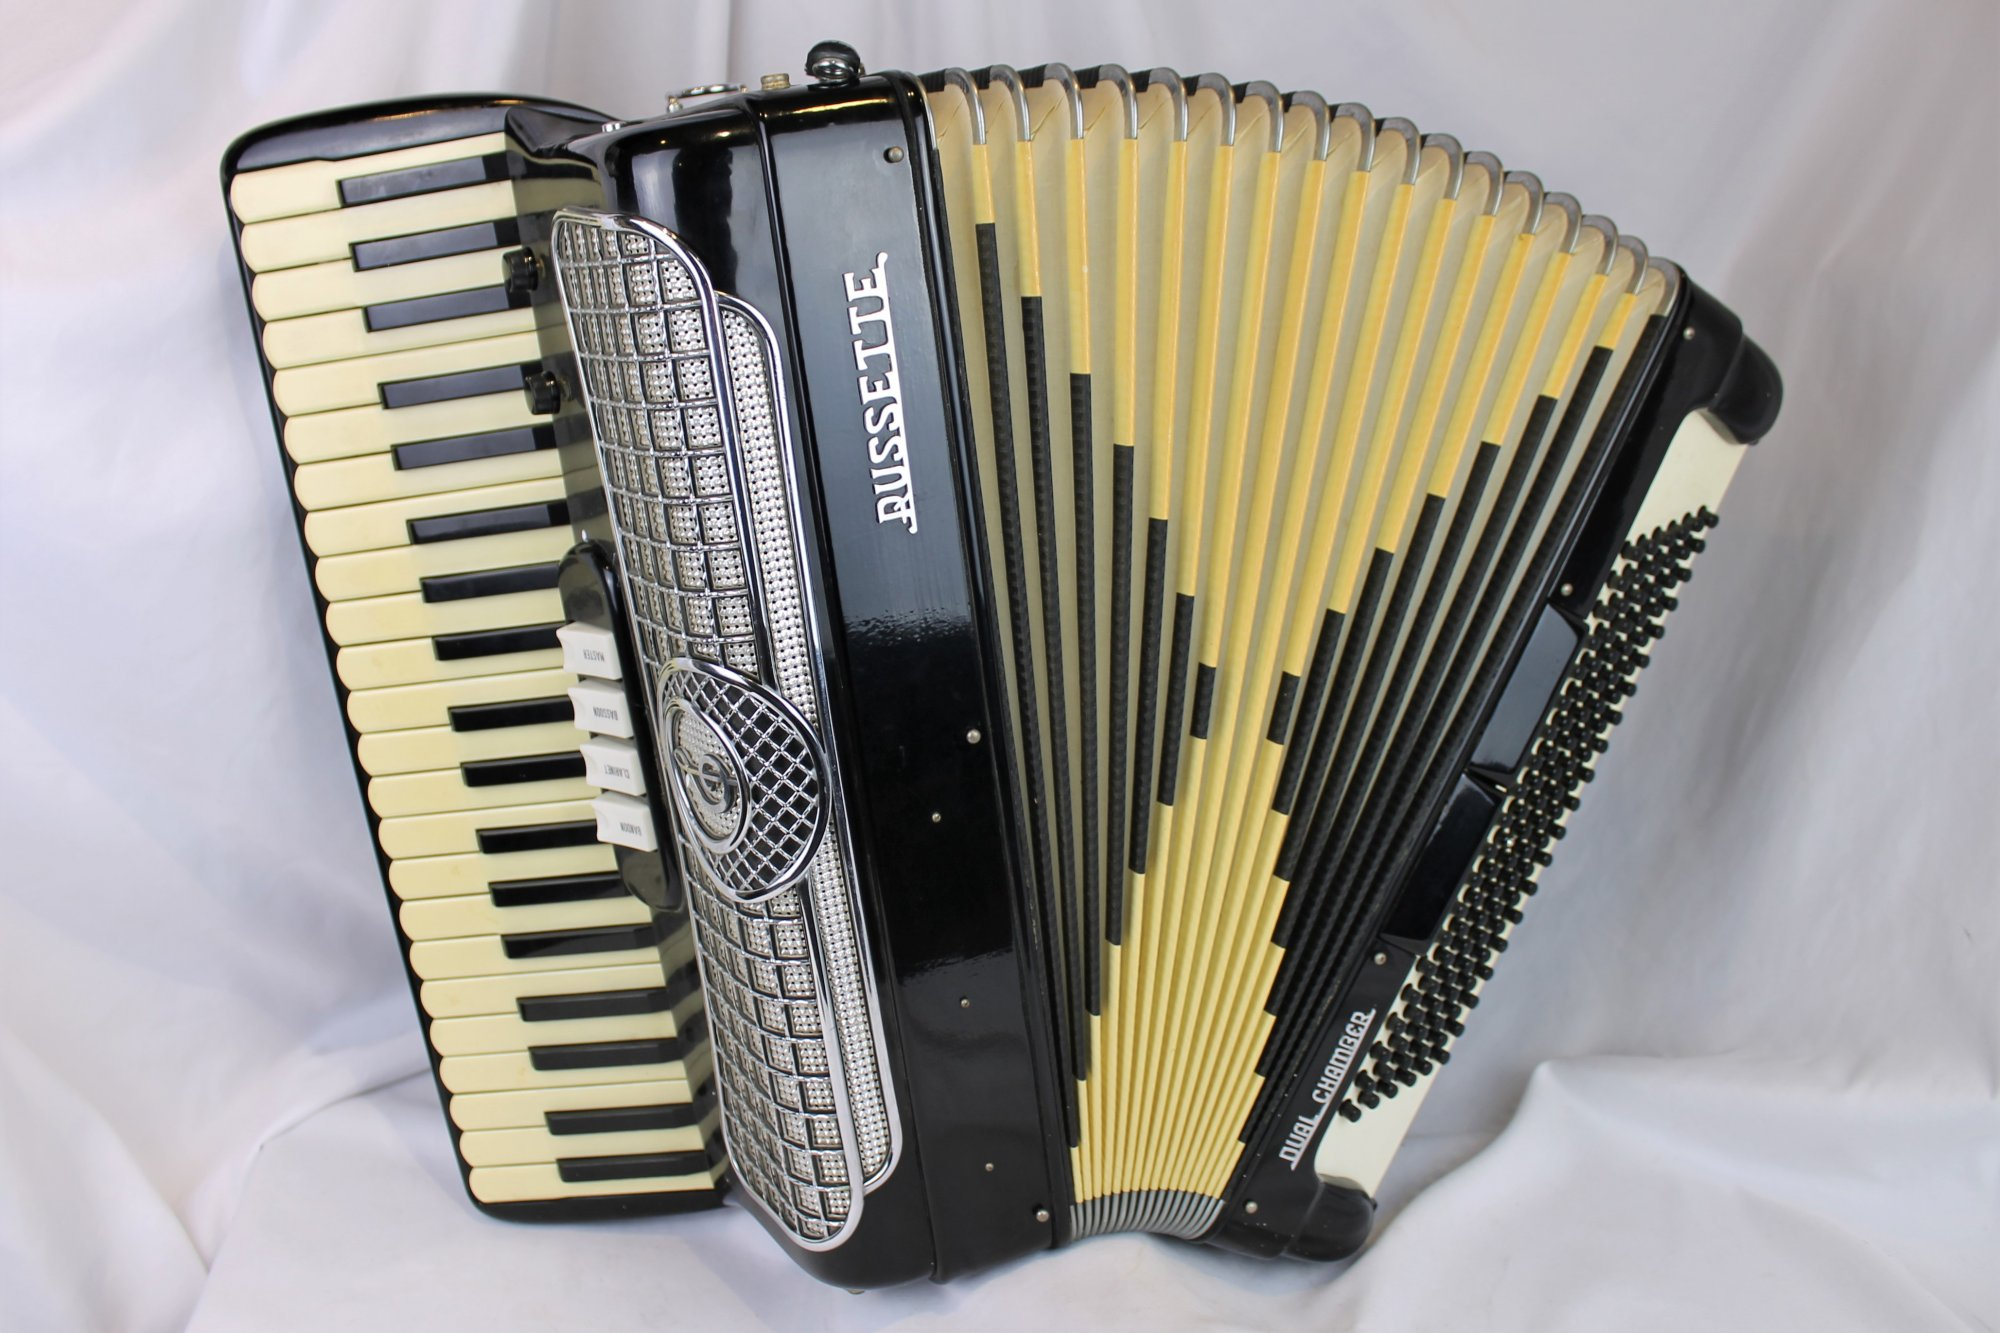 4330 - Black Russette Dual Chamber Piano Accordion LM 41 120